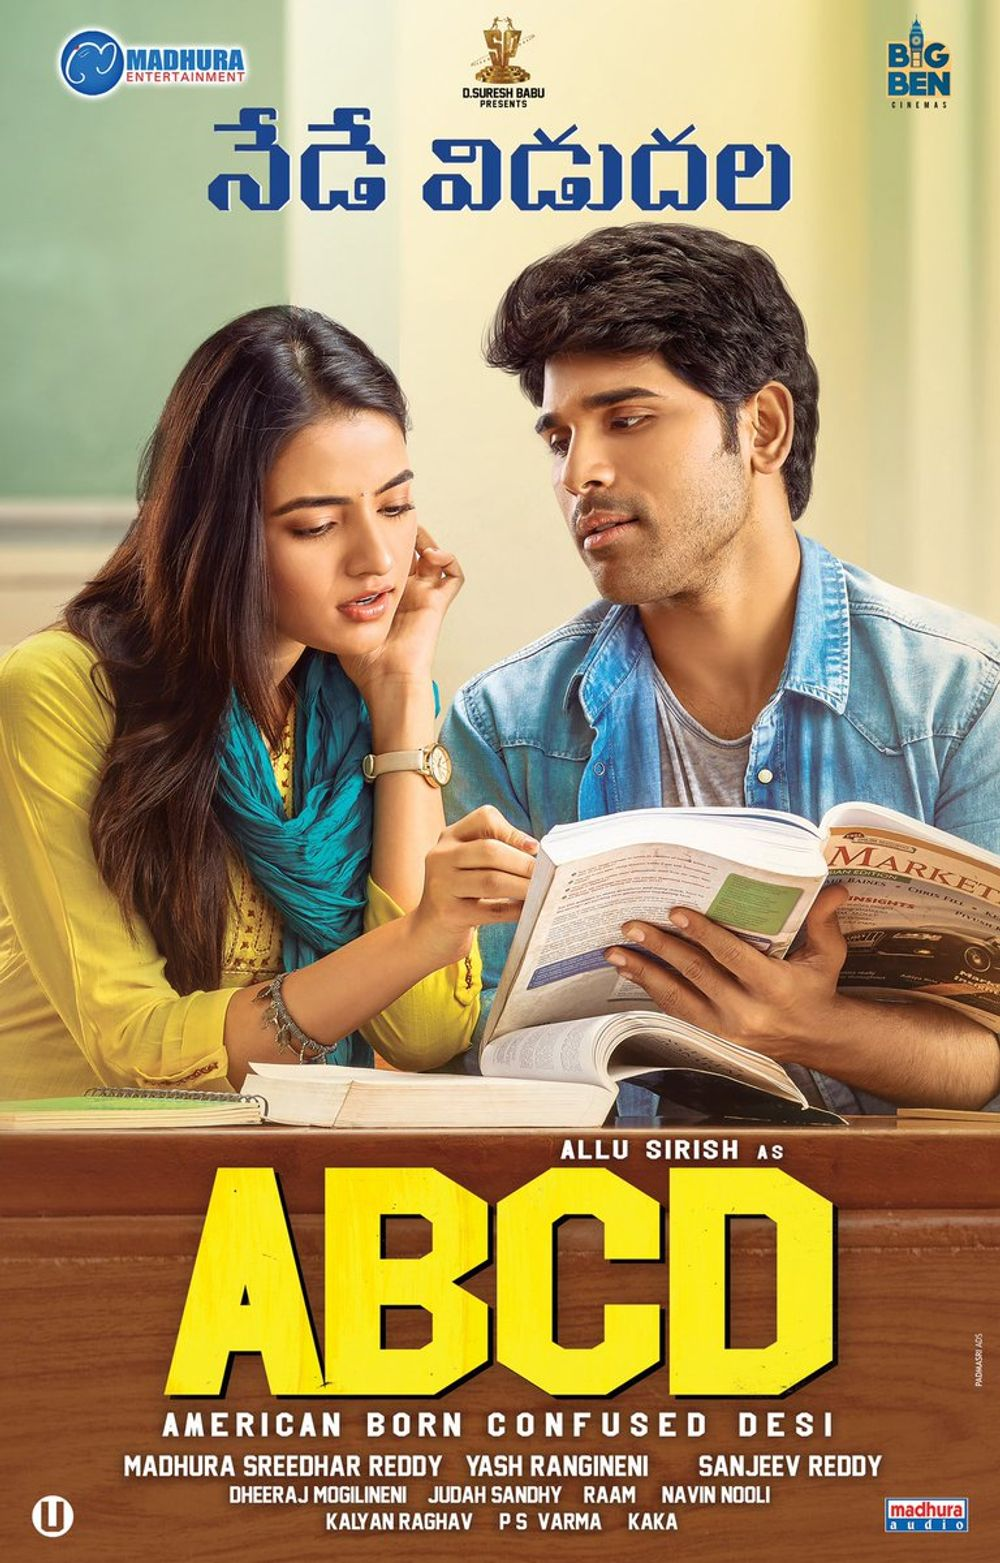 ABCD: American Born Confused Desi 2019 Hindi Dual Audio 1080p UNCUT HDRip ESubs 2.1GB Download